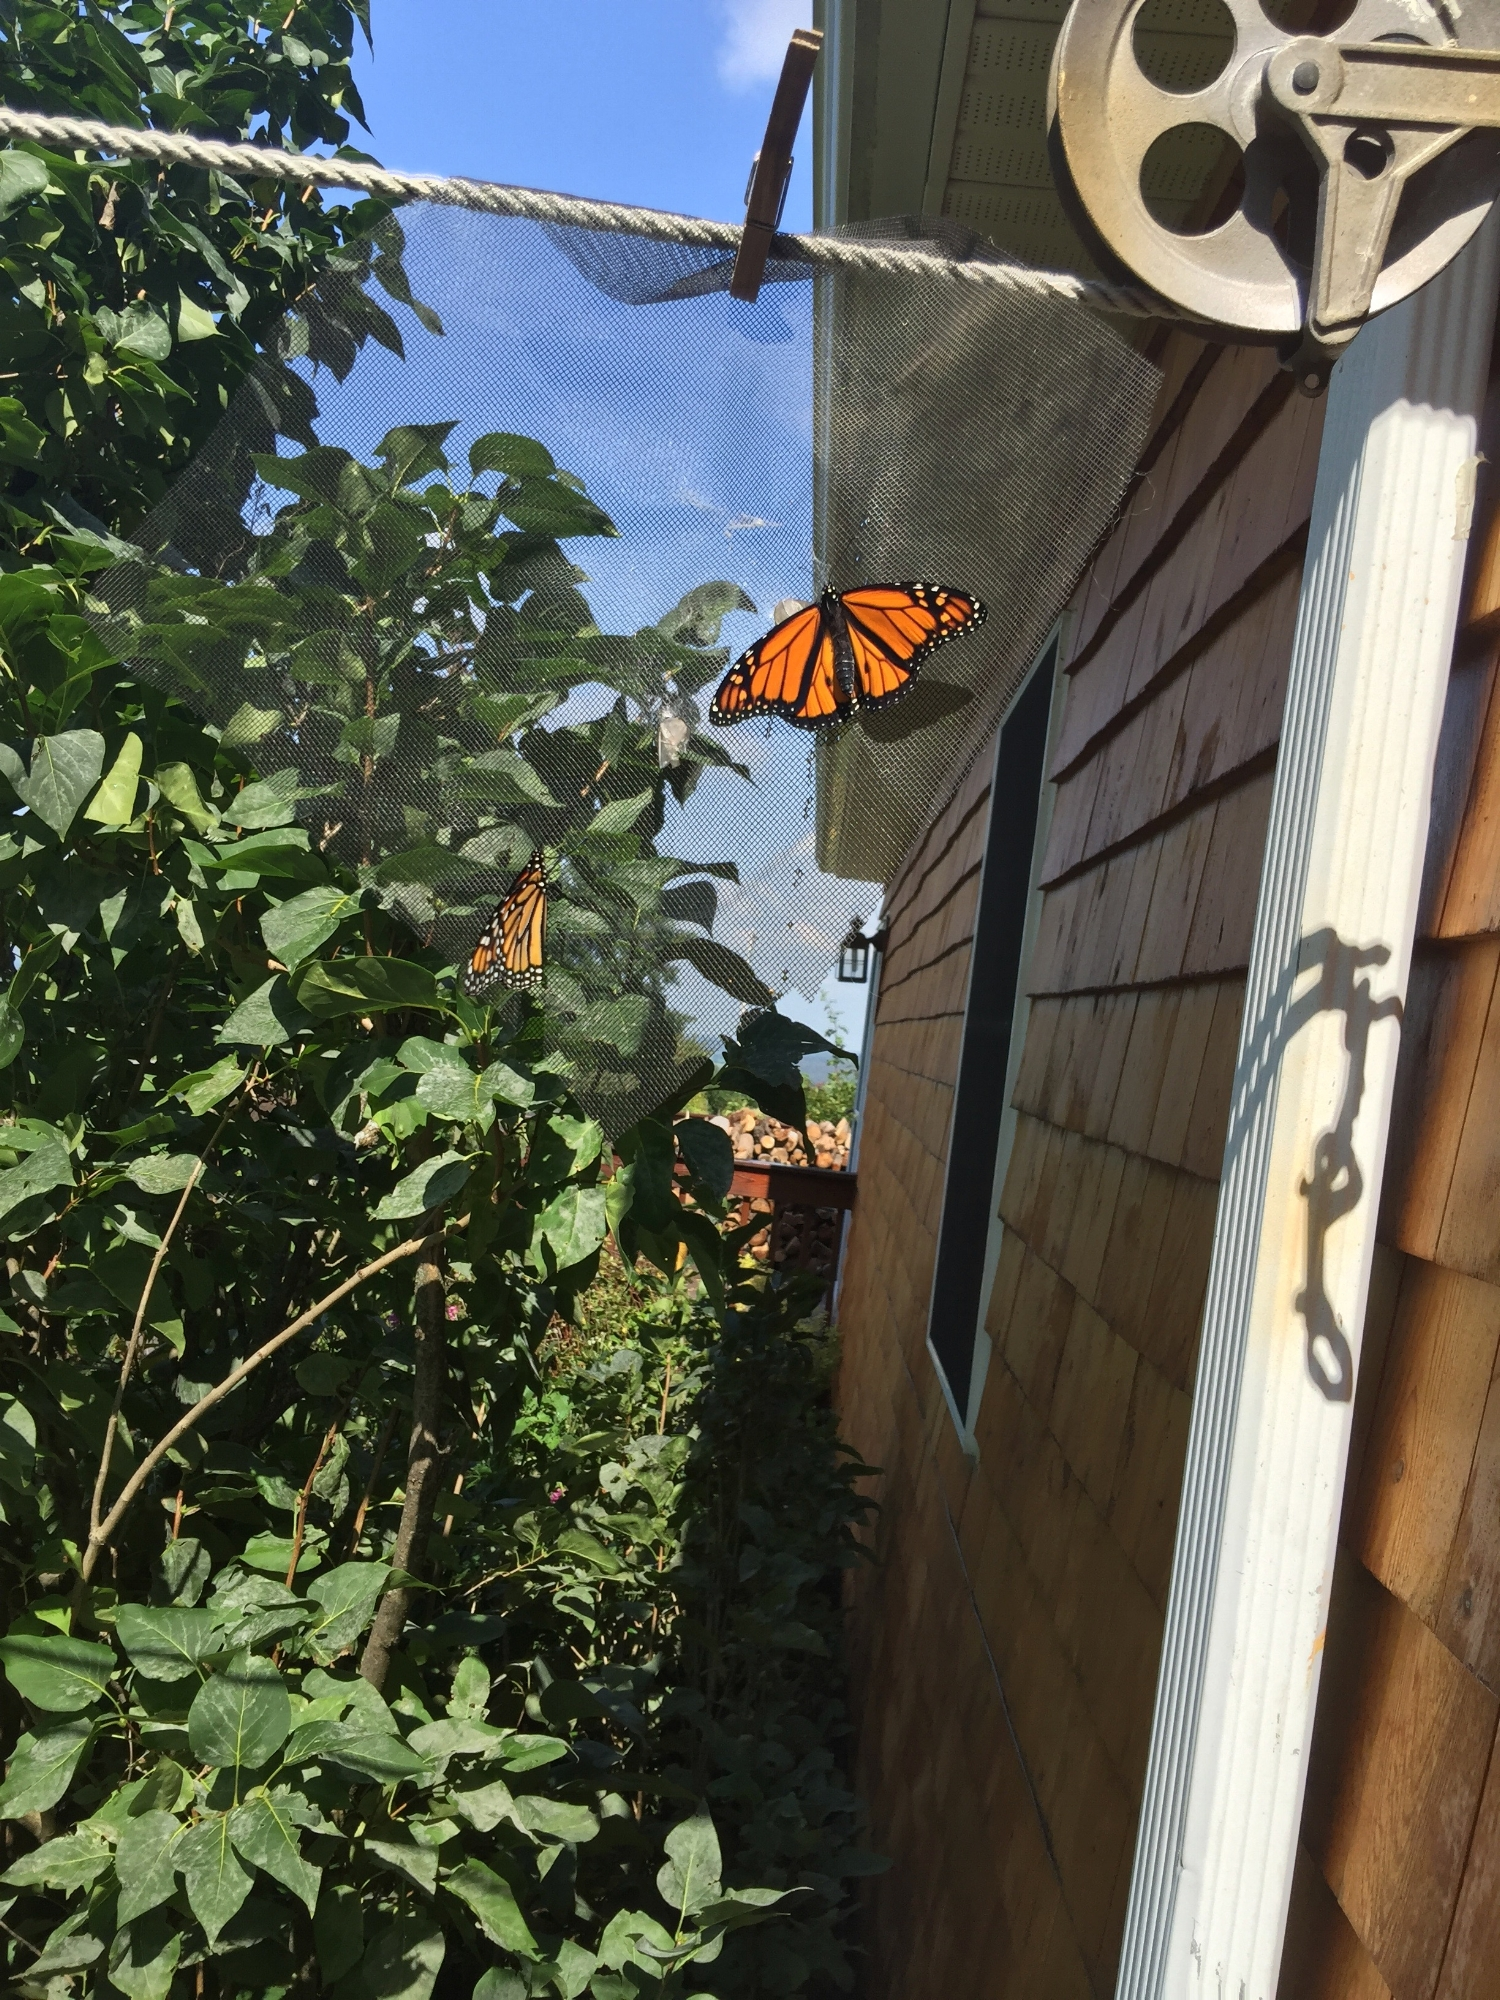 Two male Monarchs saved as caterpillars from hay field